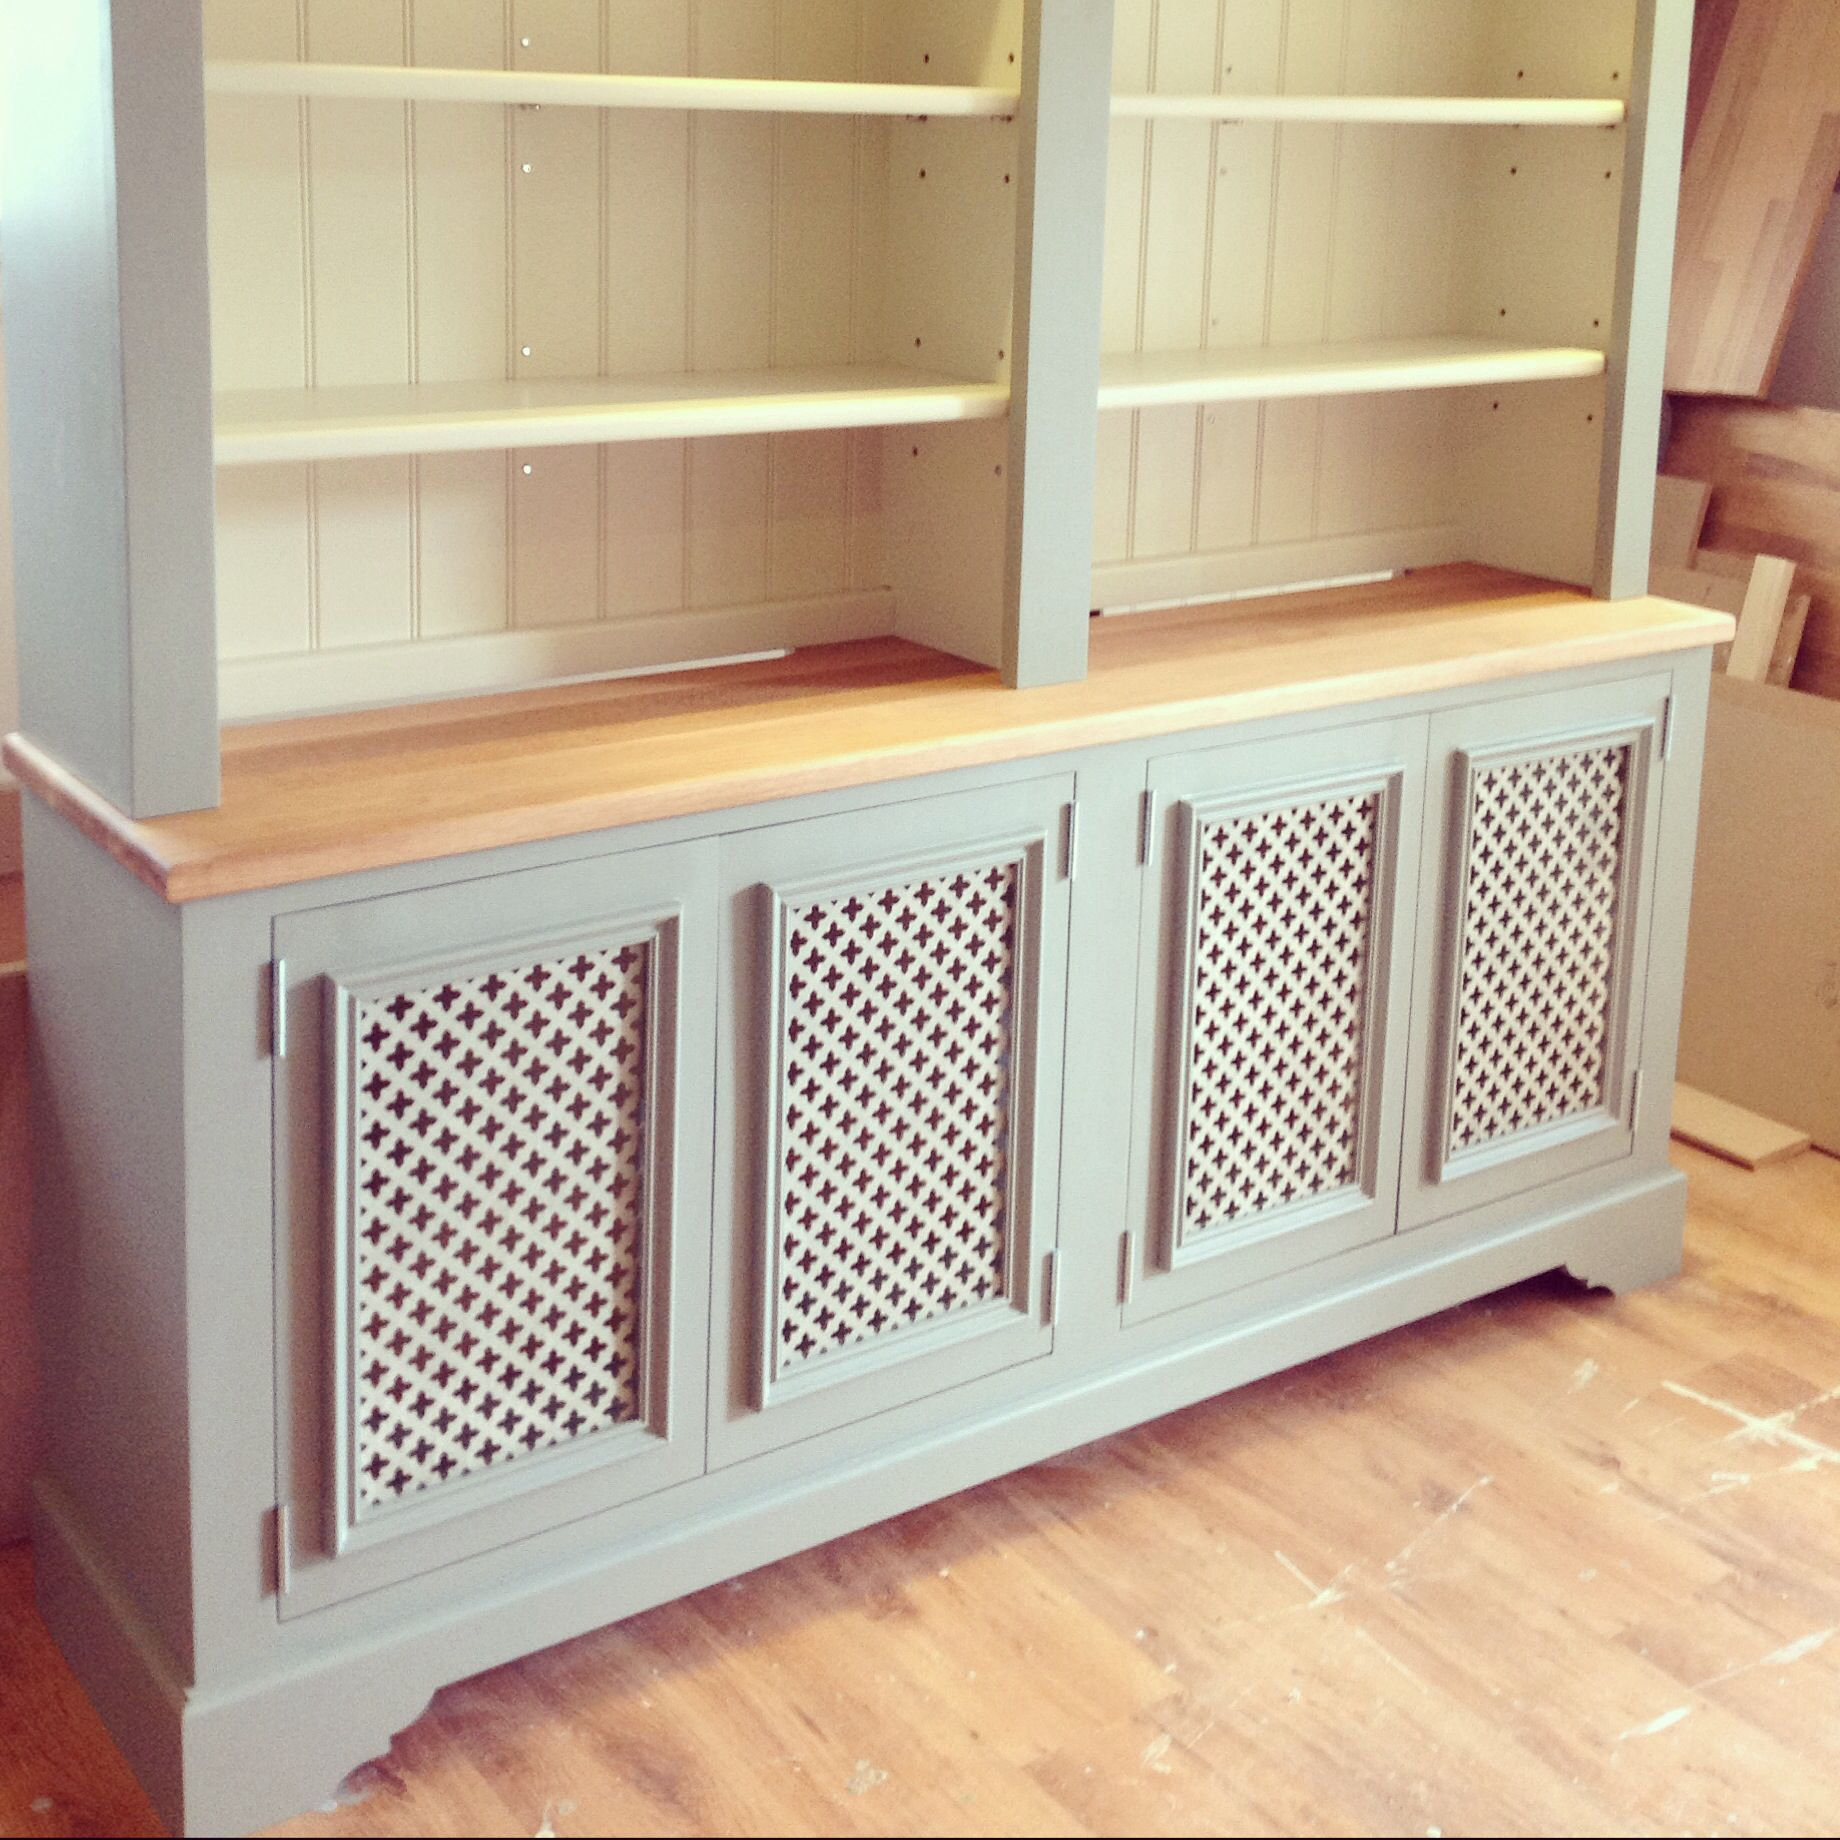 Radiator cover / dresser, painted in Farrow & Ball {lime